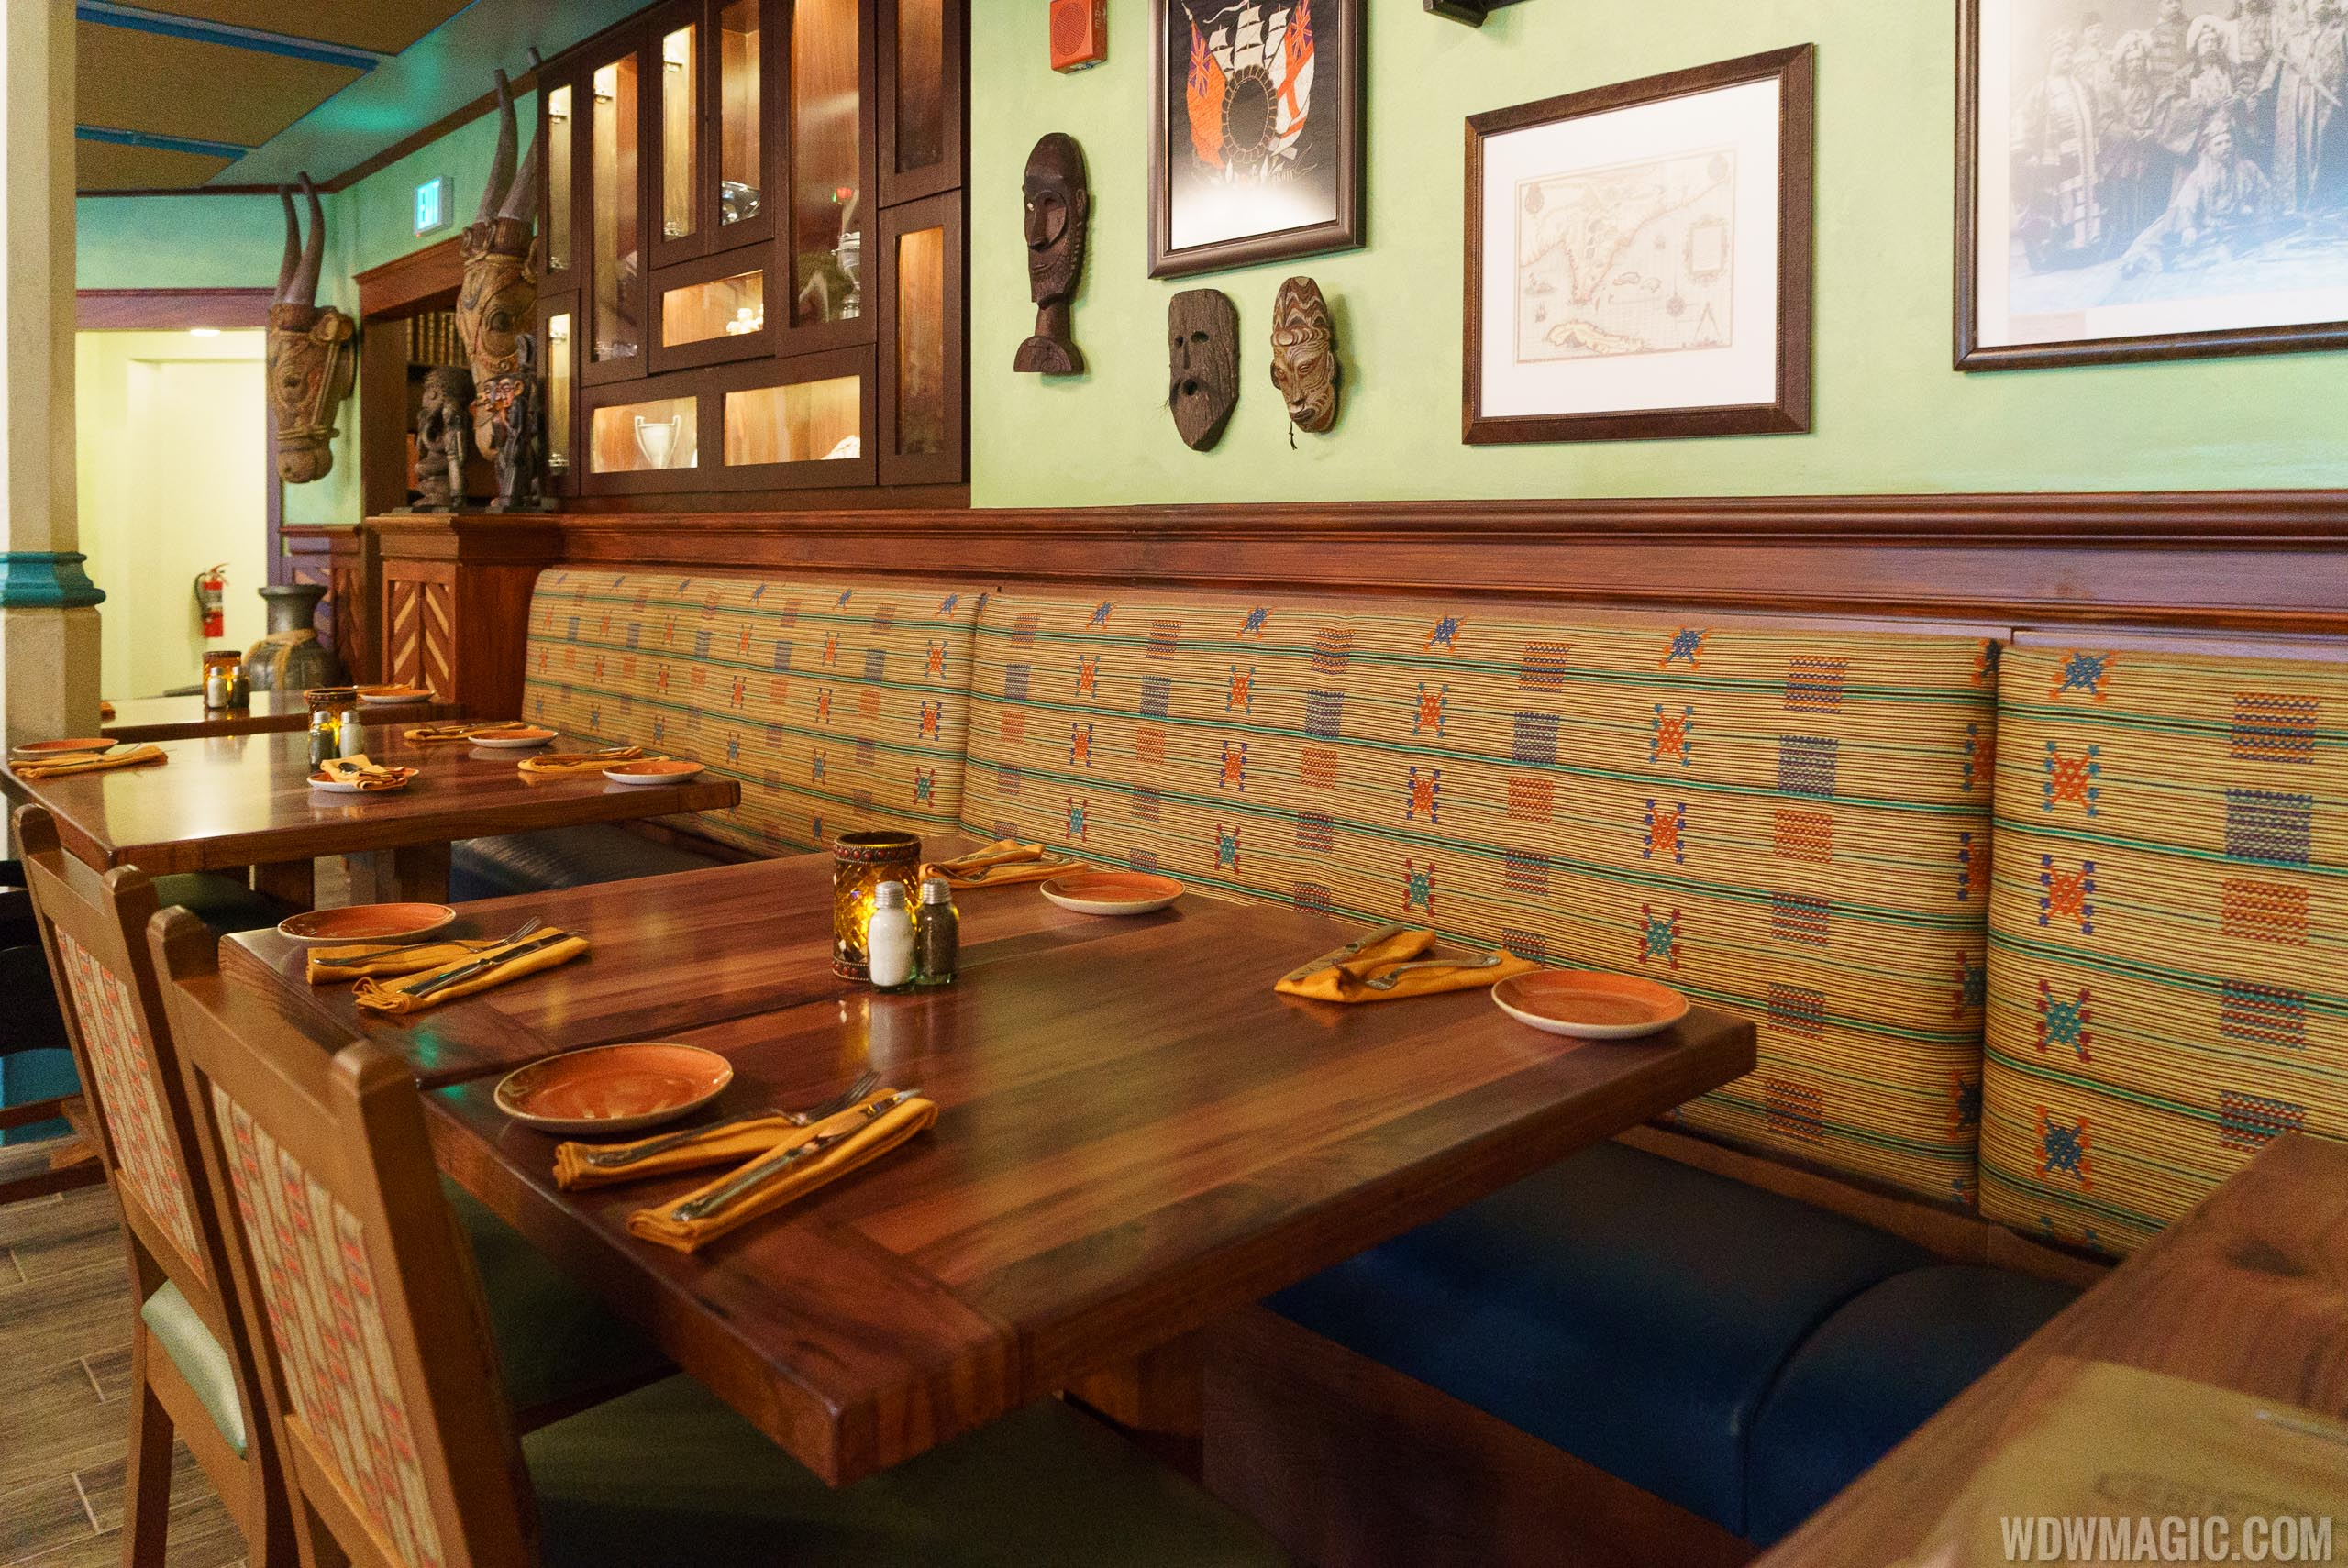 Jungle Cruise Skipper Canteen - Mess Hall dining room seating